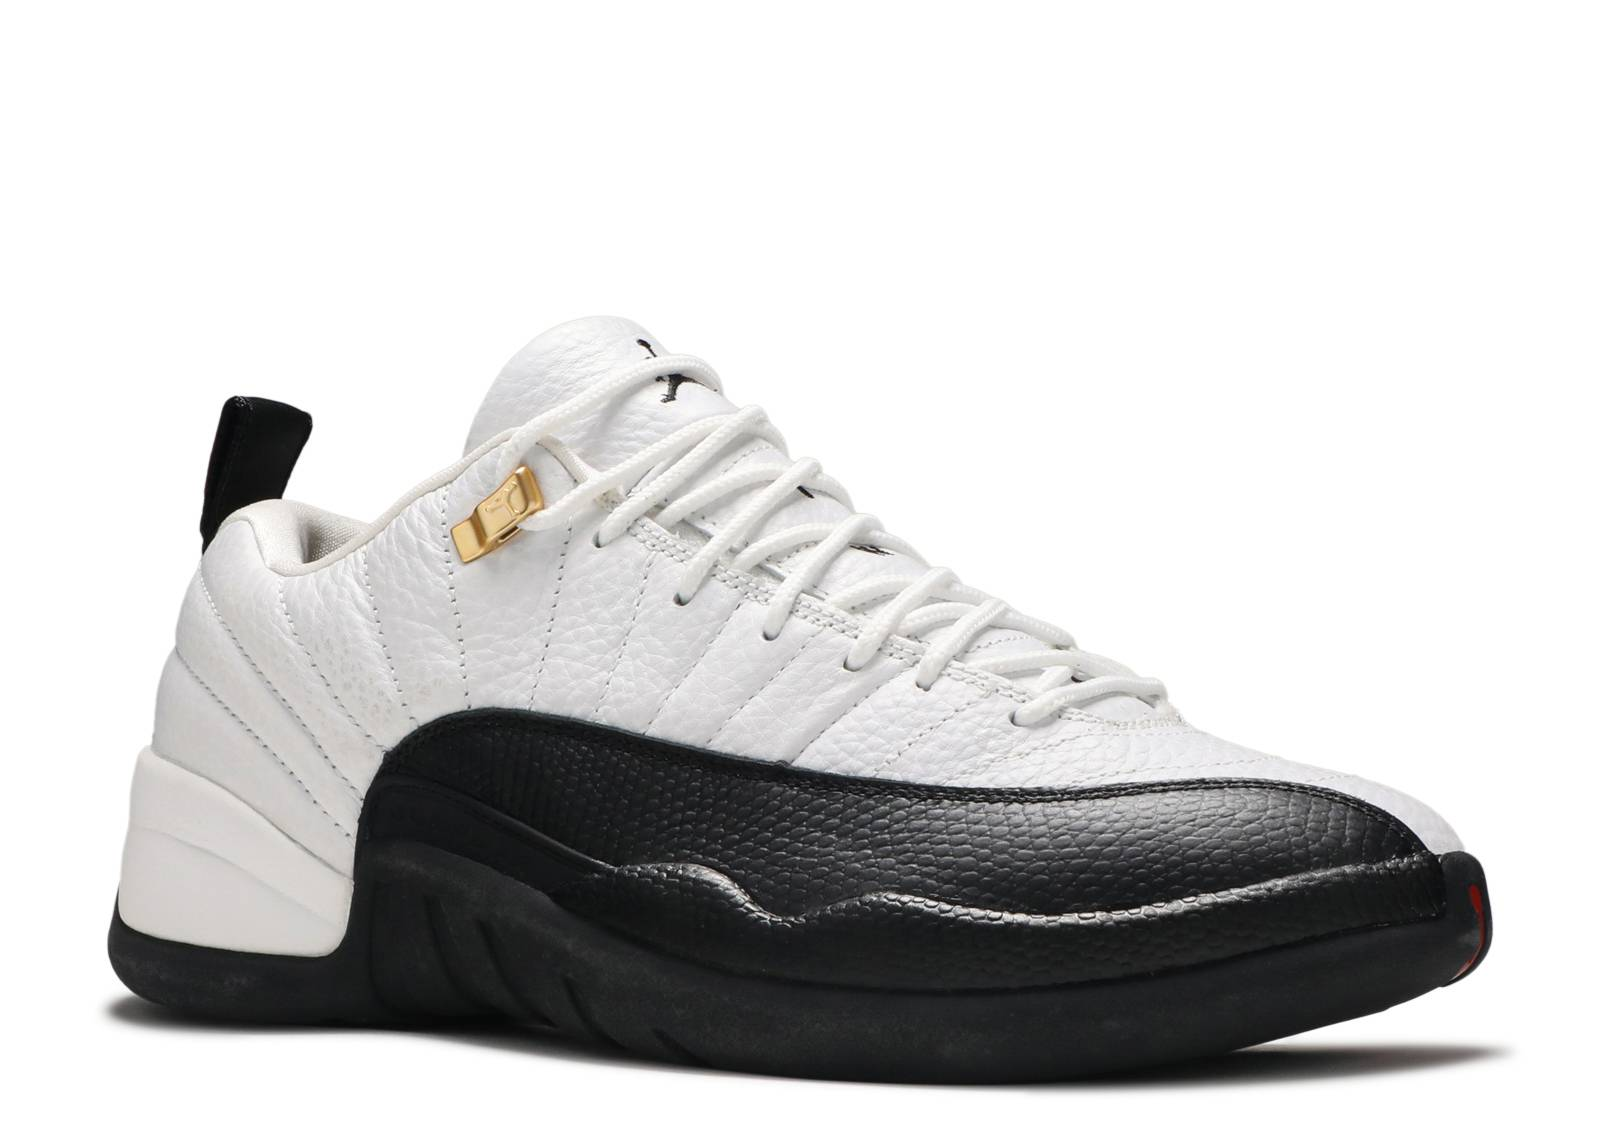 Air Jordan 12 Taxi Low ukpinefurniture.co.uk 3c87e40fc475